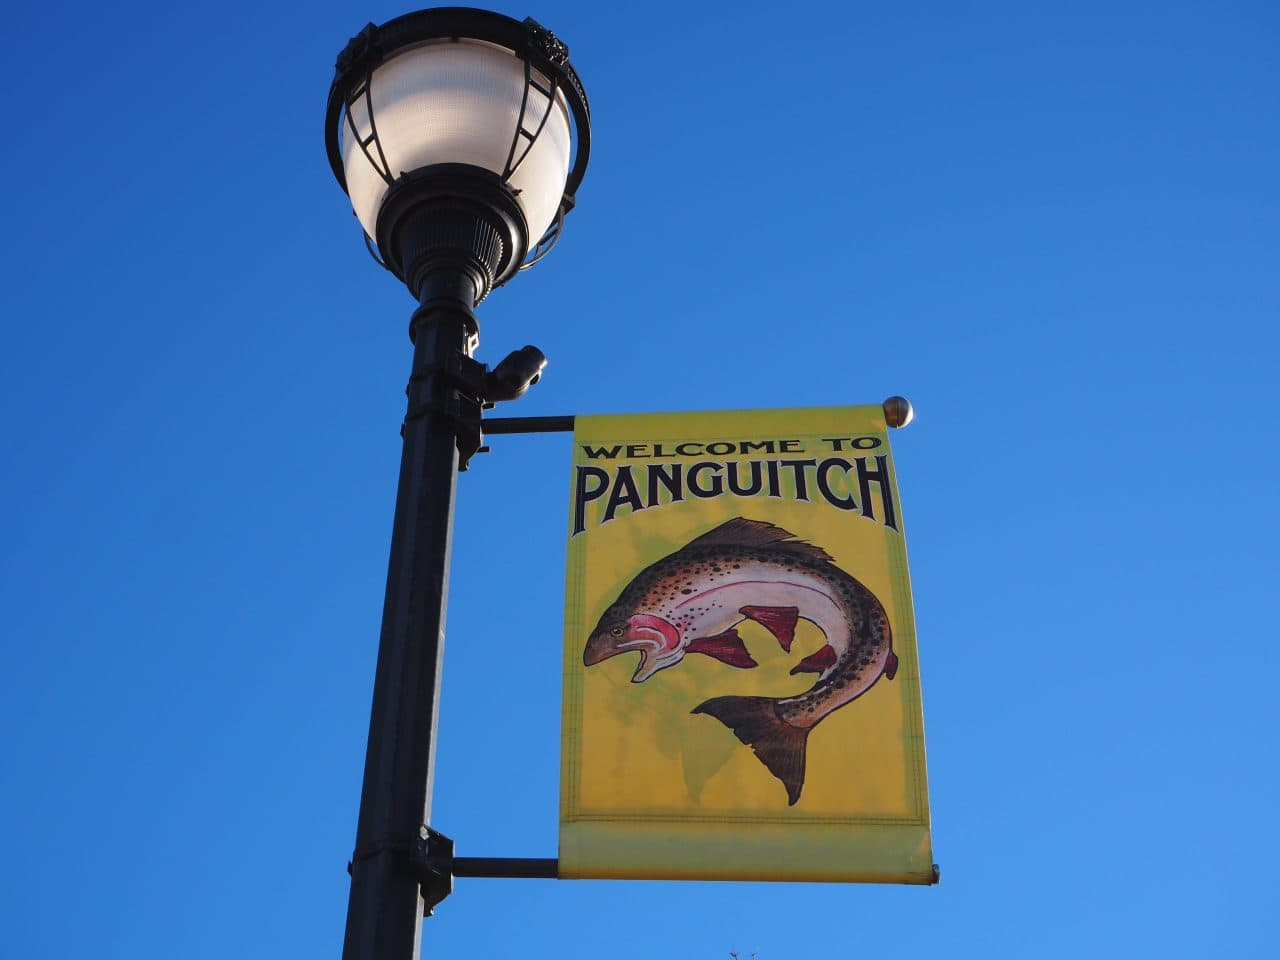 Panguitch, Utah town sign